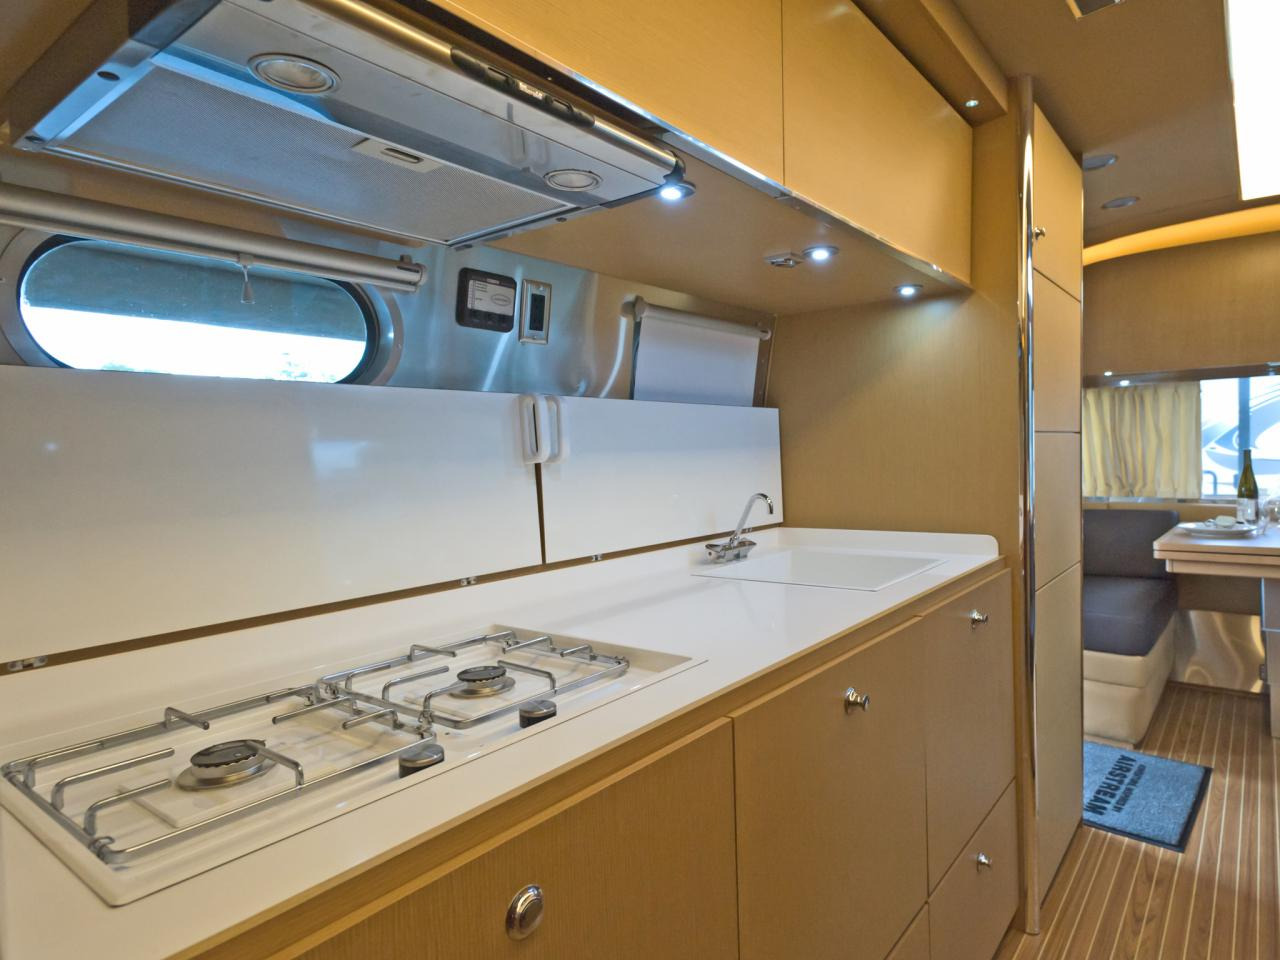 Rv Countertop Options : Take the 2014 RV Tour Decorating and Design Ideas for Interior Rooms ...